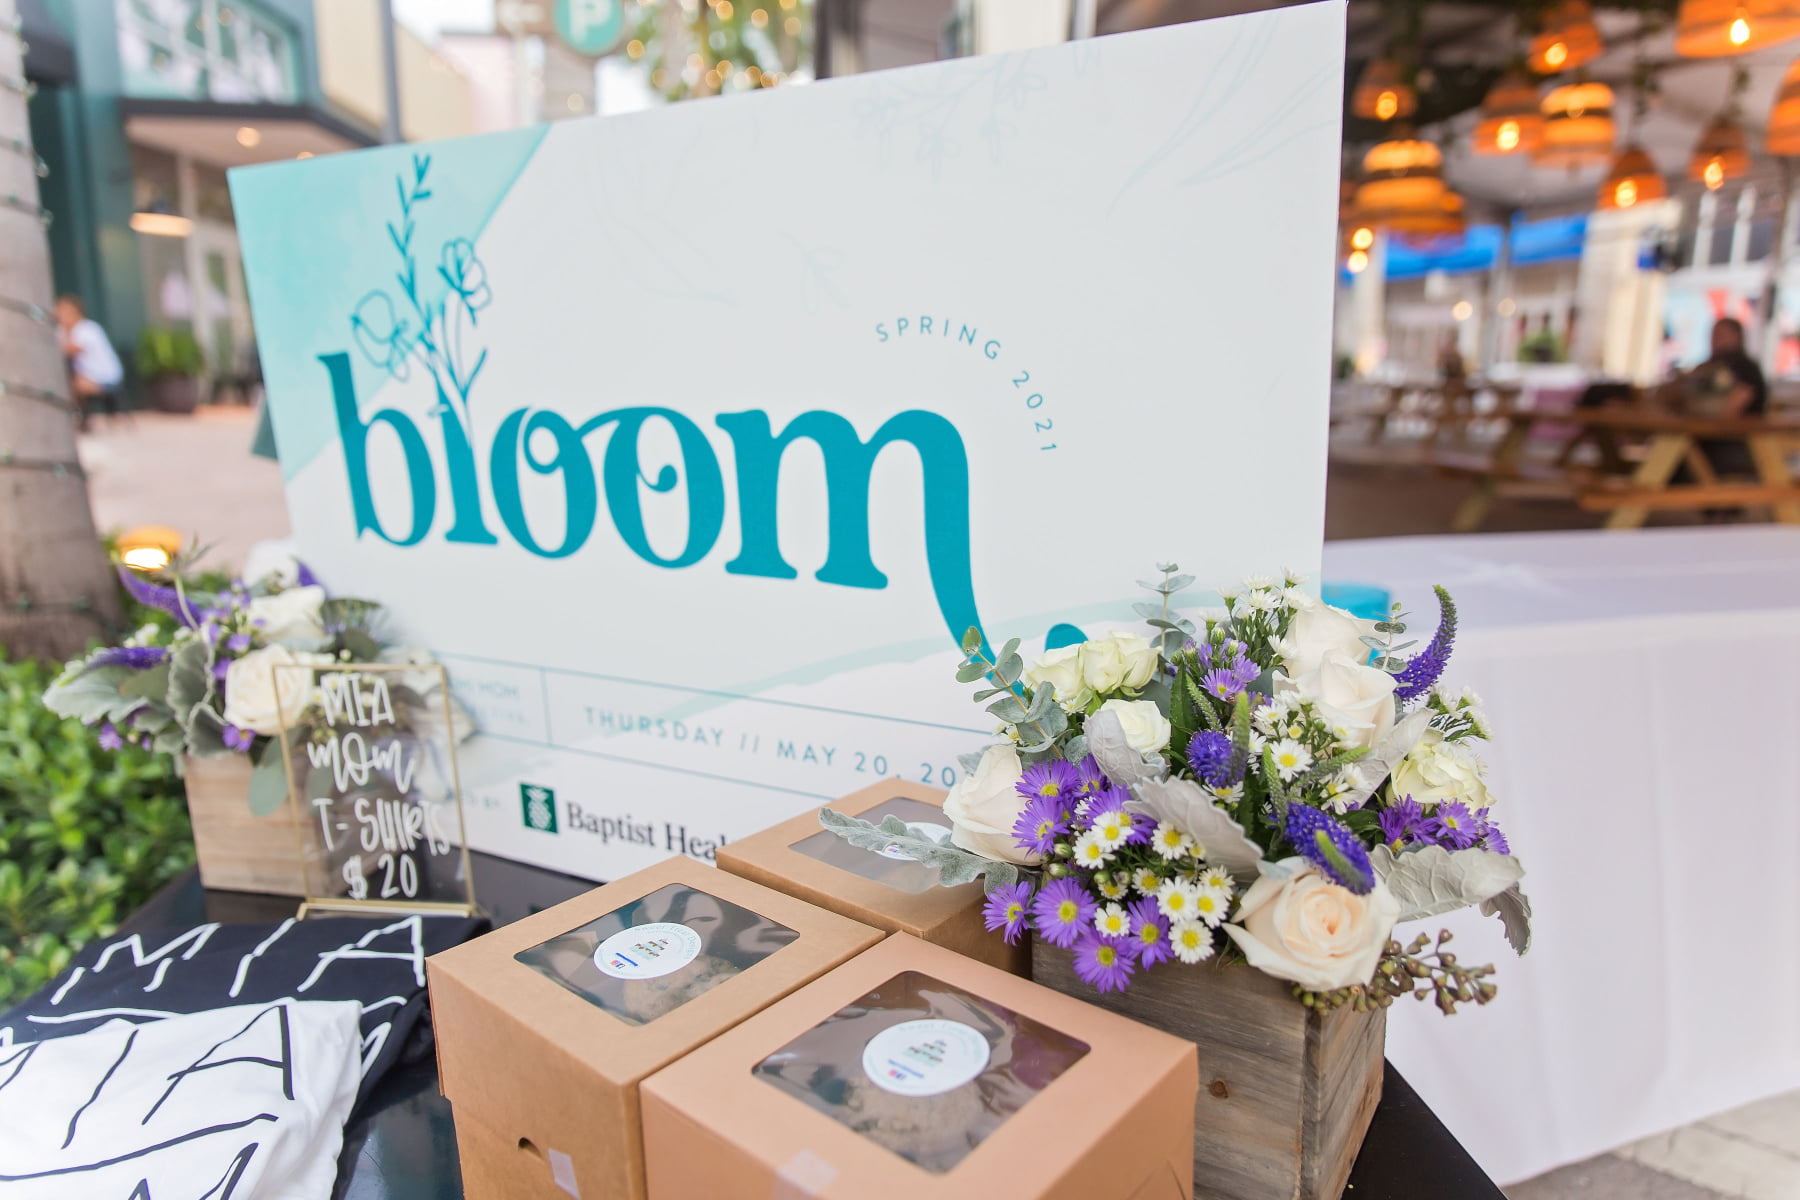 Bloom Event Recap Miami Mom Collective Party Gifts Solutions